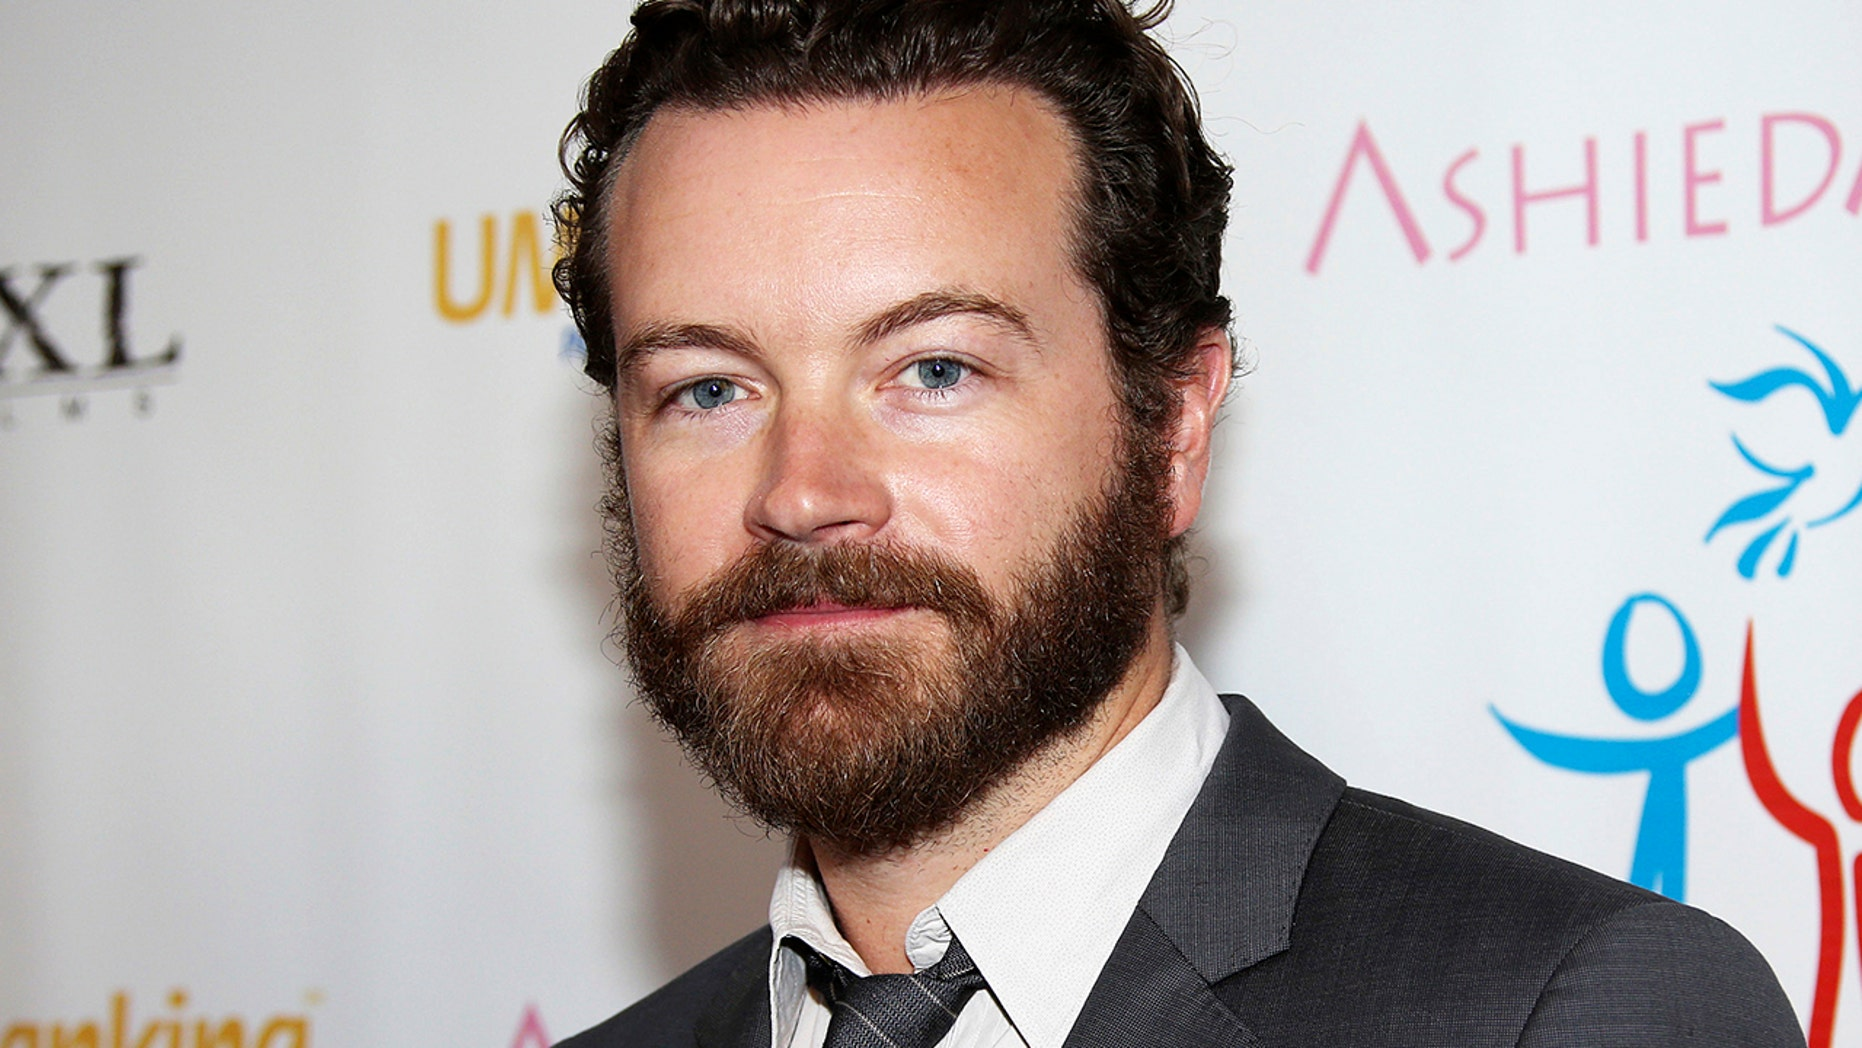 In this March 24, 2014 file photo, actor Danny Masterson arrives at the Youth for Human Rights International Celebrity Benefit in Los Angeles.